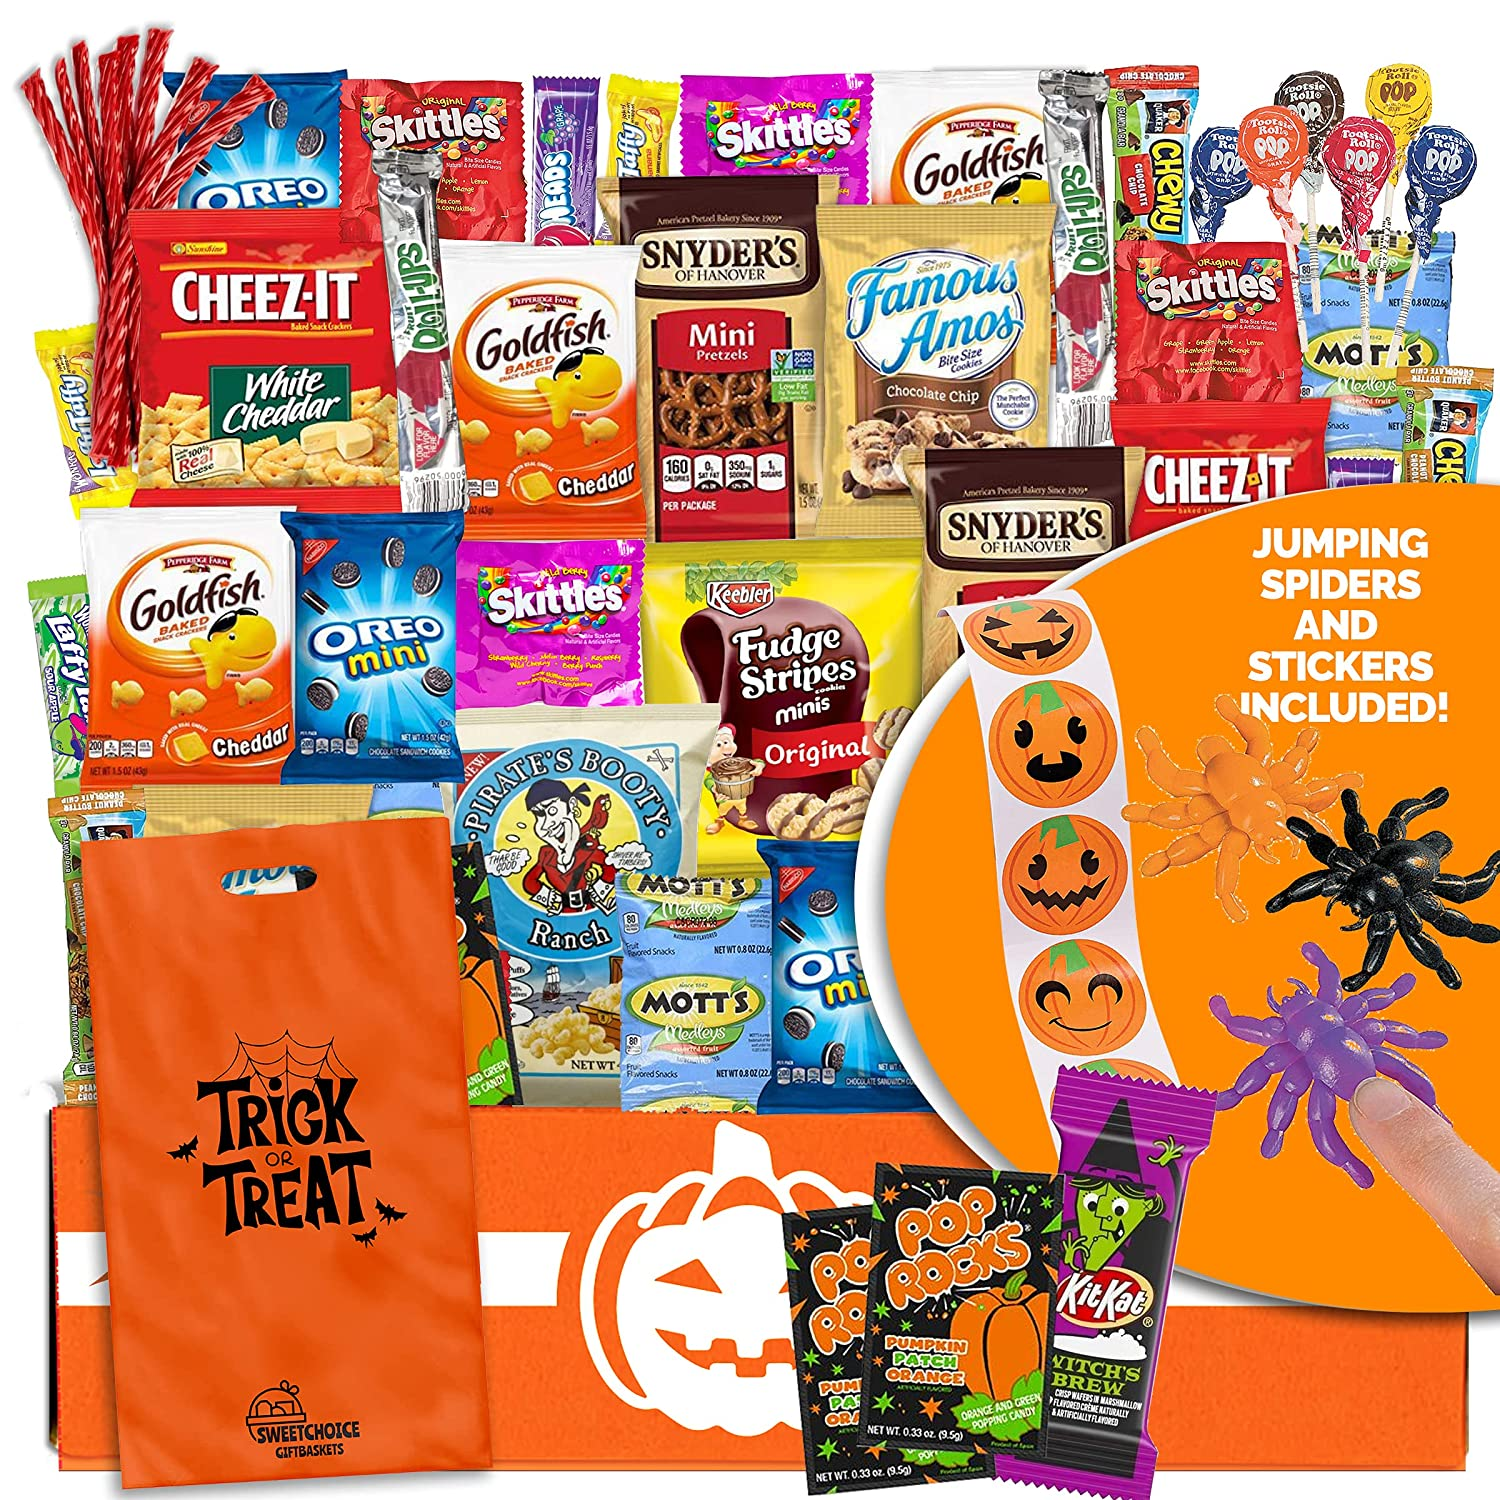 Halloween Care Package Snack box (45) Candy Snacks Assortment Trick or Treat Cookies Food Bars Toys Variety Gift Pack Box Bundle Mixed Bulk Sampler for Children Kids Boys Girls College Students Office